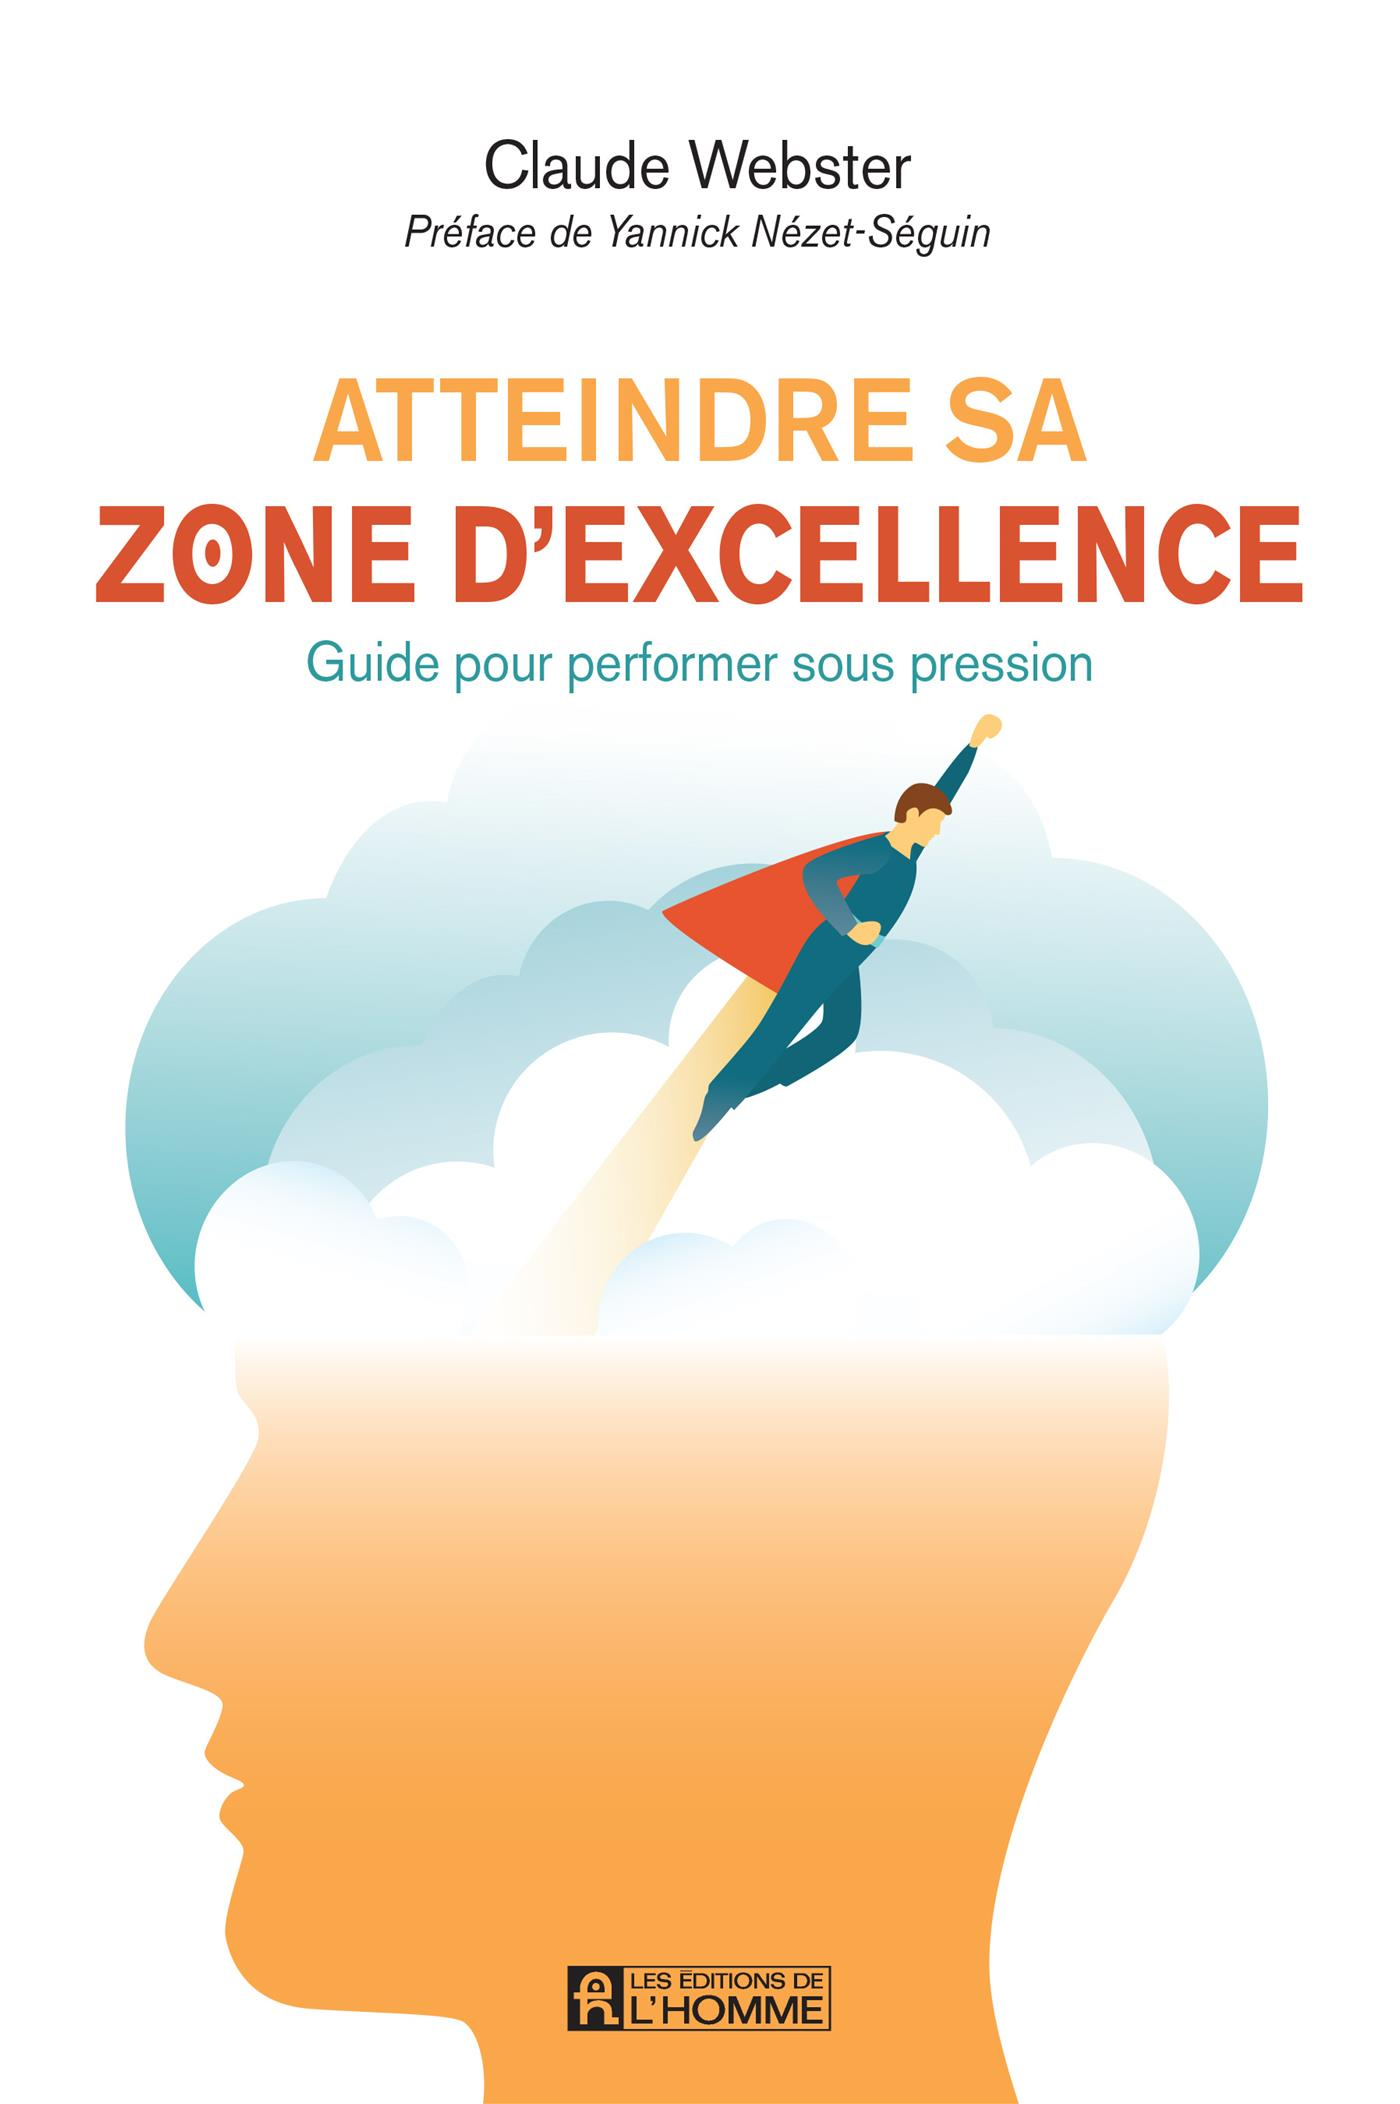 Atteindre sa zone d'excellence